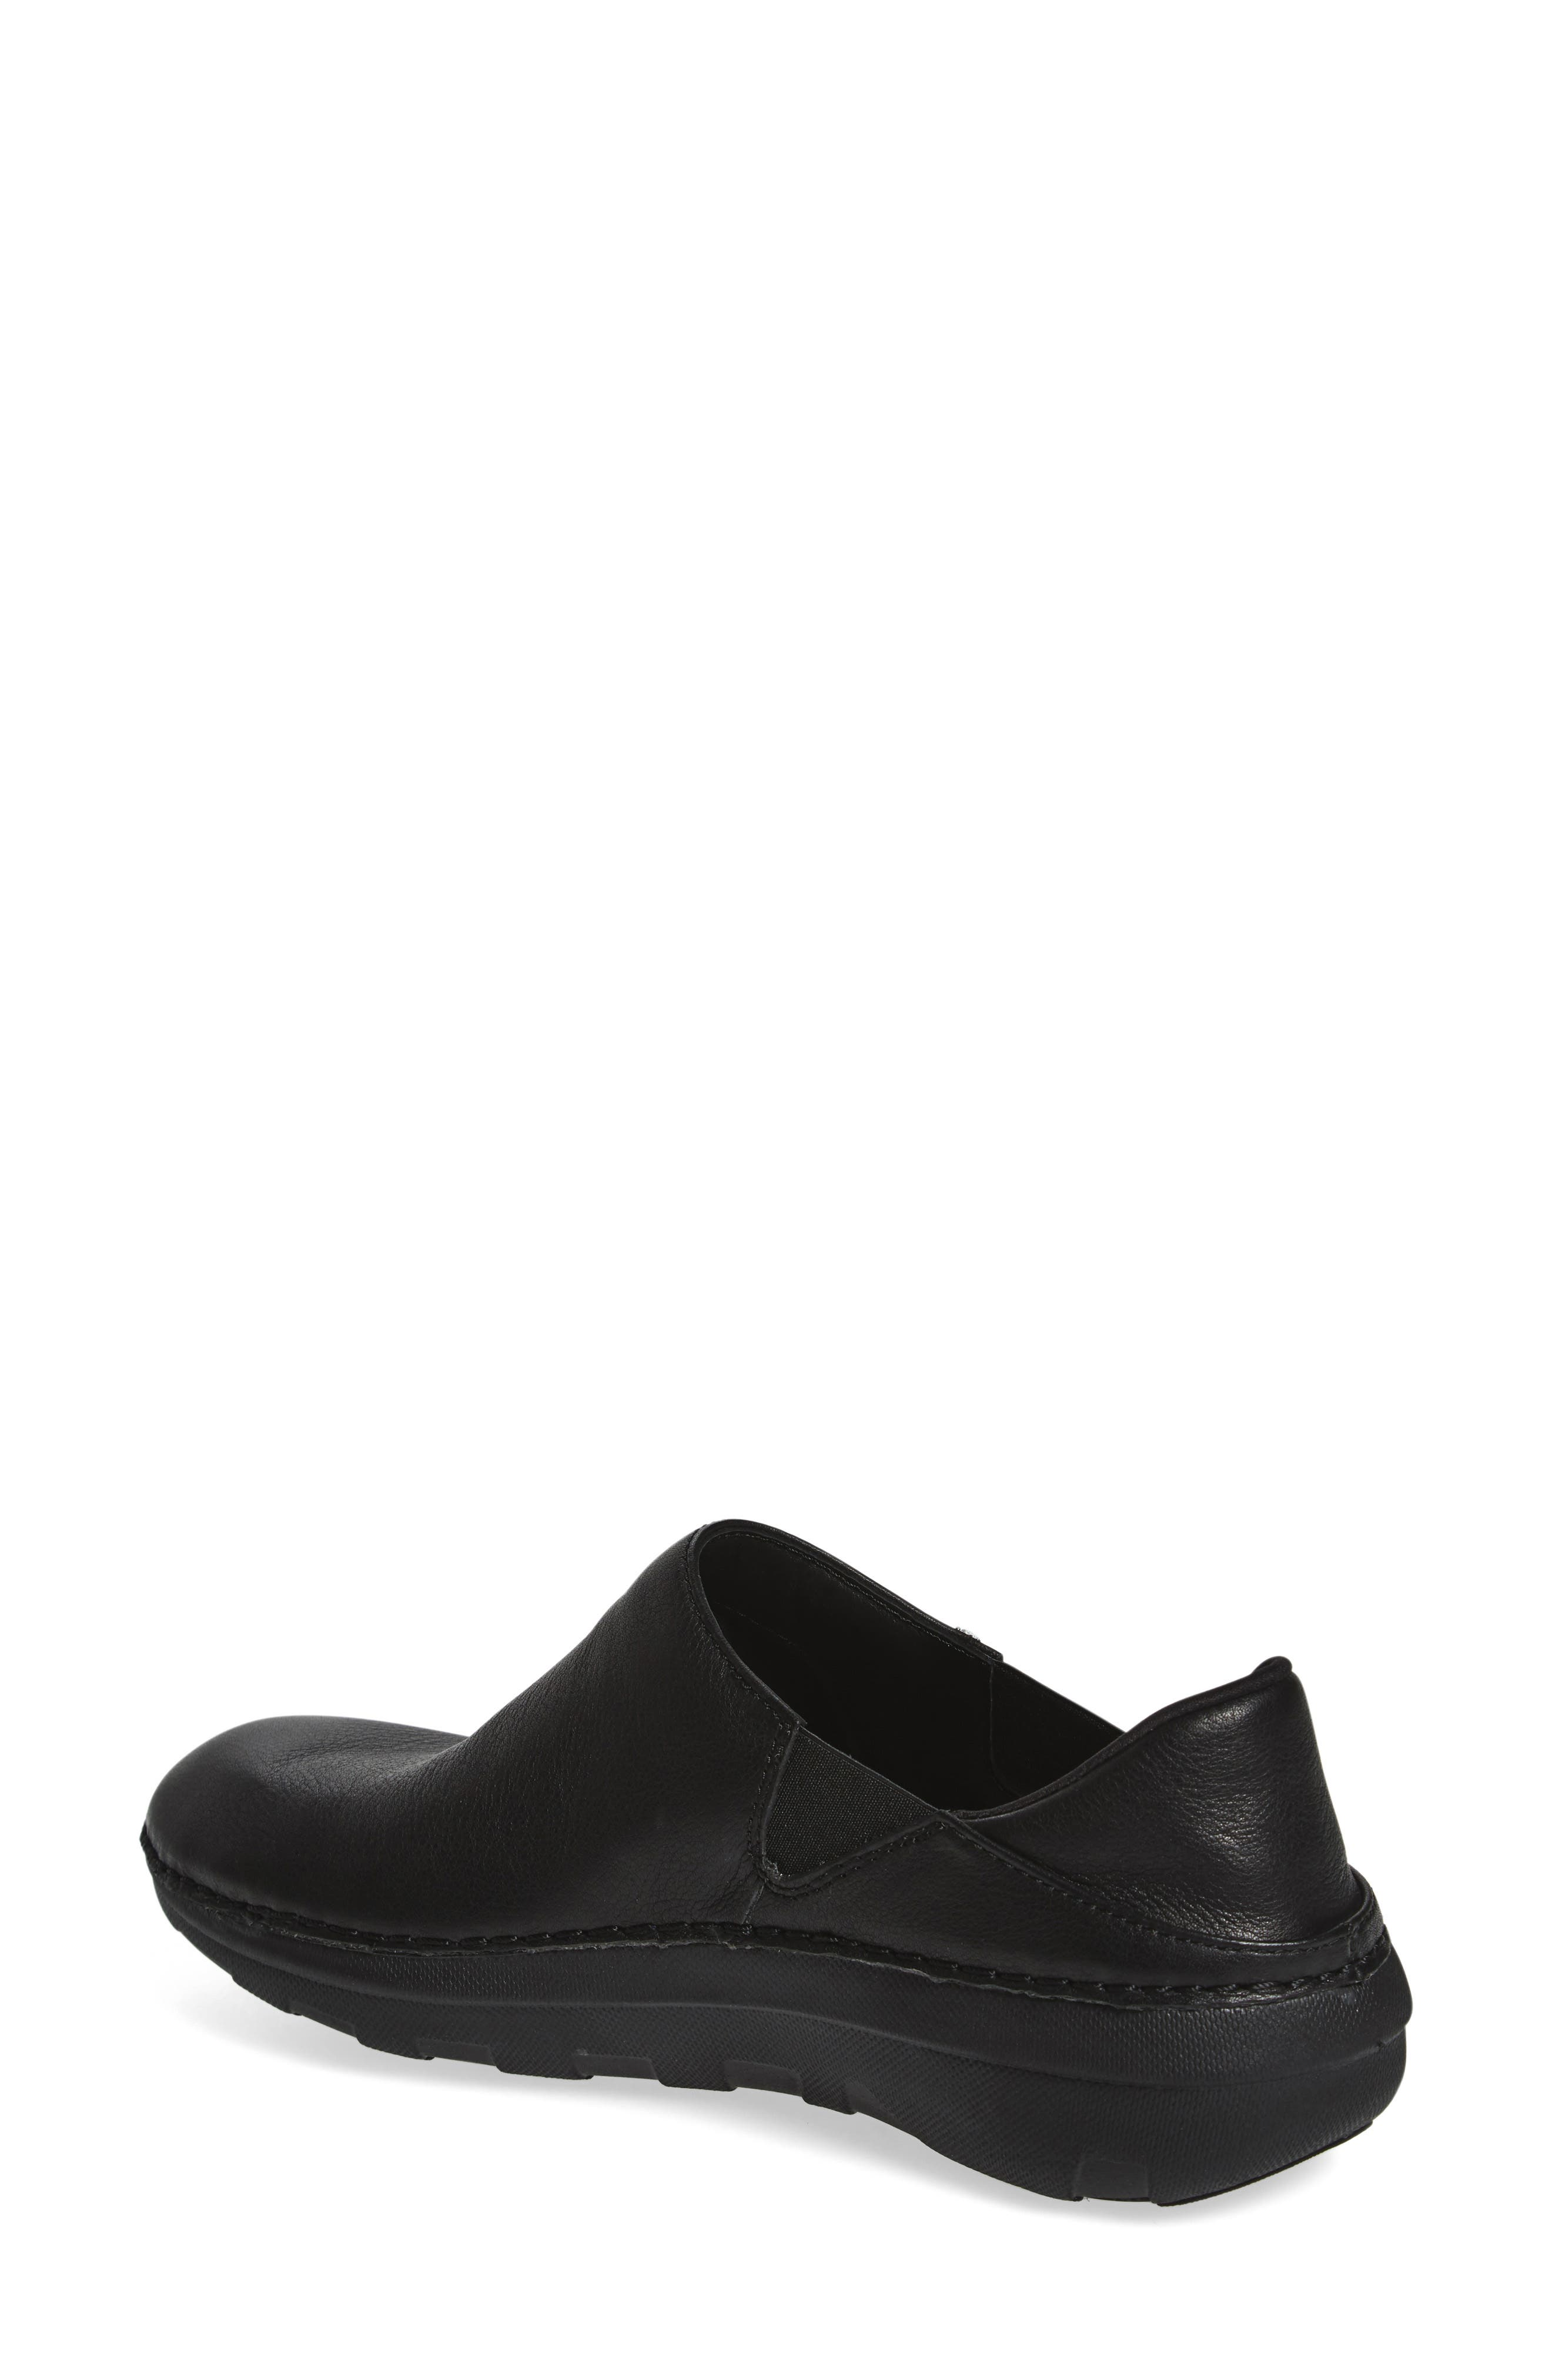 Superloafer Flat,                             Alternate thumbnail 2, color,                             ALL BLACK LEATHER